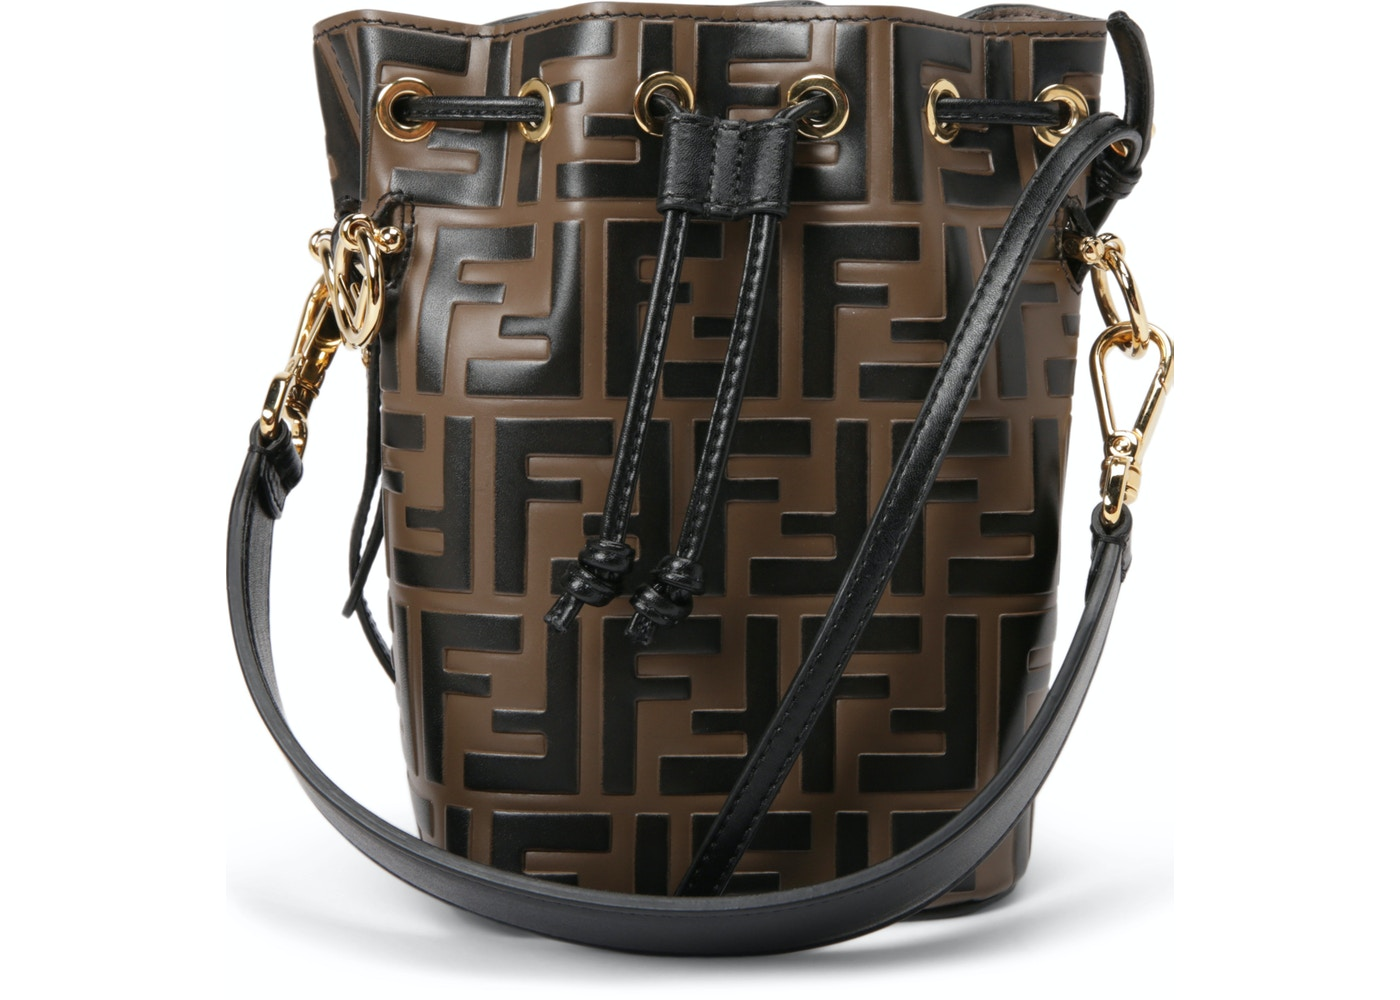 bf8516ec473b Fendi Mon Tresor Bucket Bag Zucca Embossed Small Tobacco Black. Zucca  Embossed Small Tobacco Black